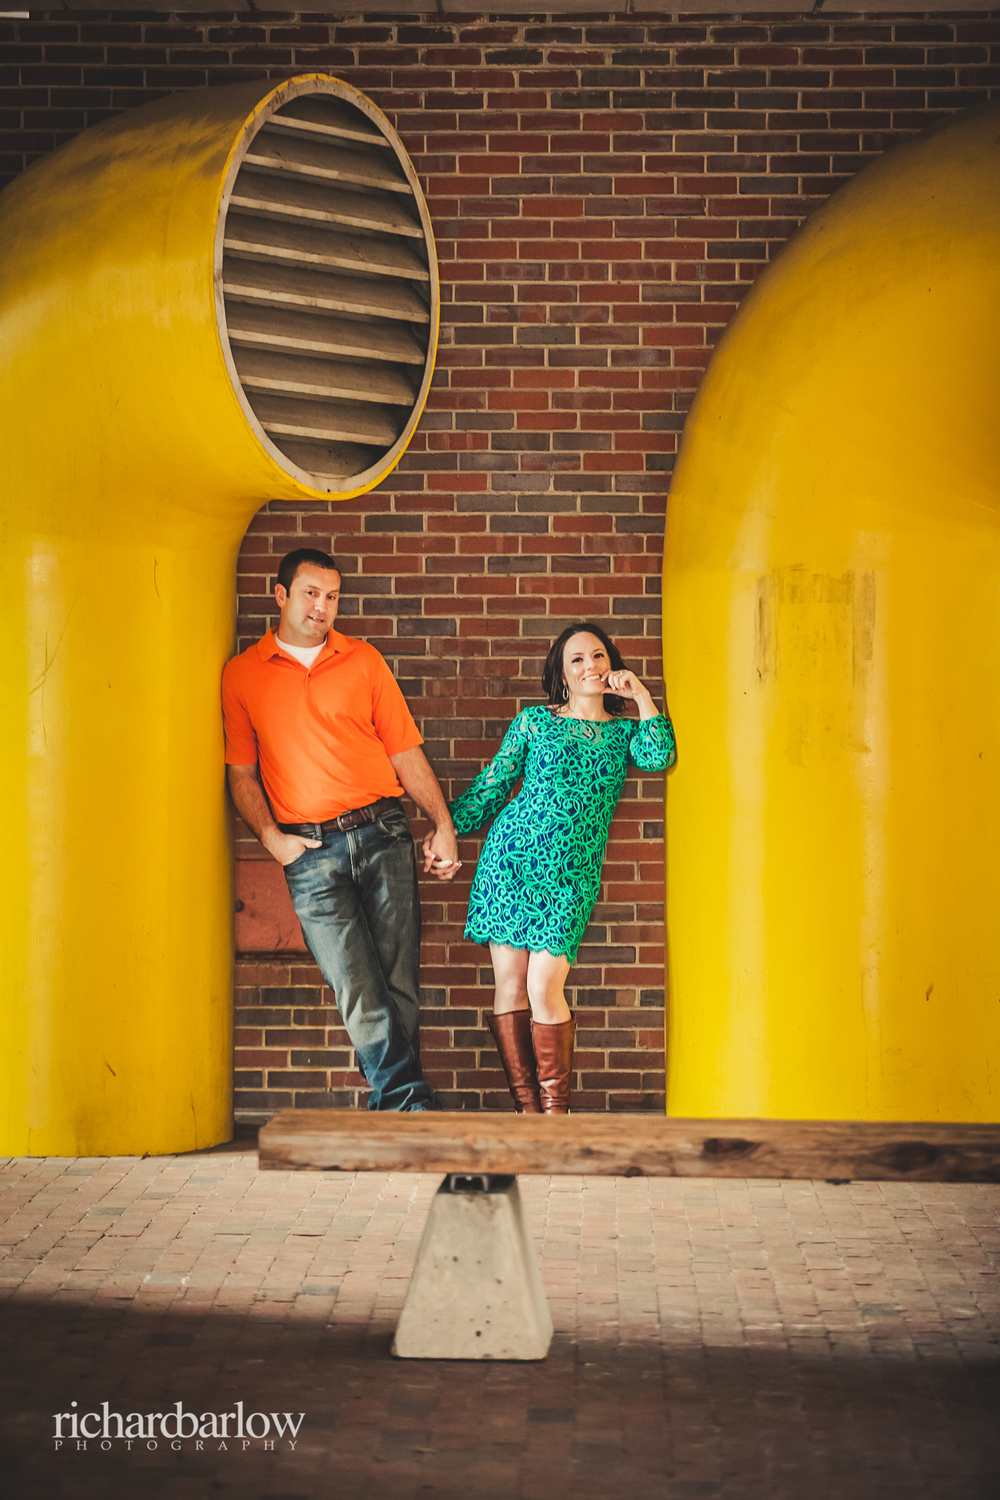 richard barlow photography - Jason and Karen Engagement Session NC State-9